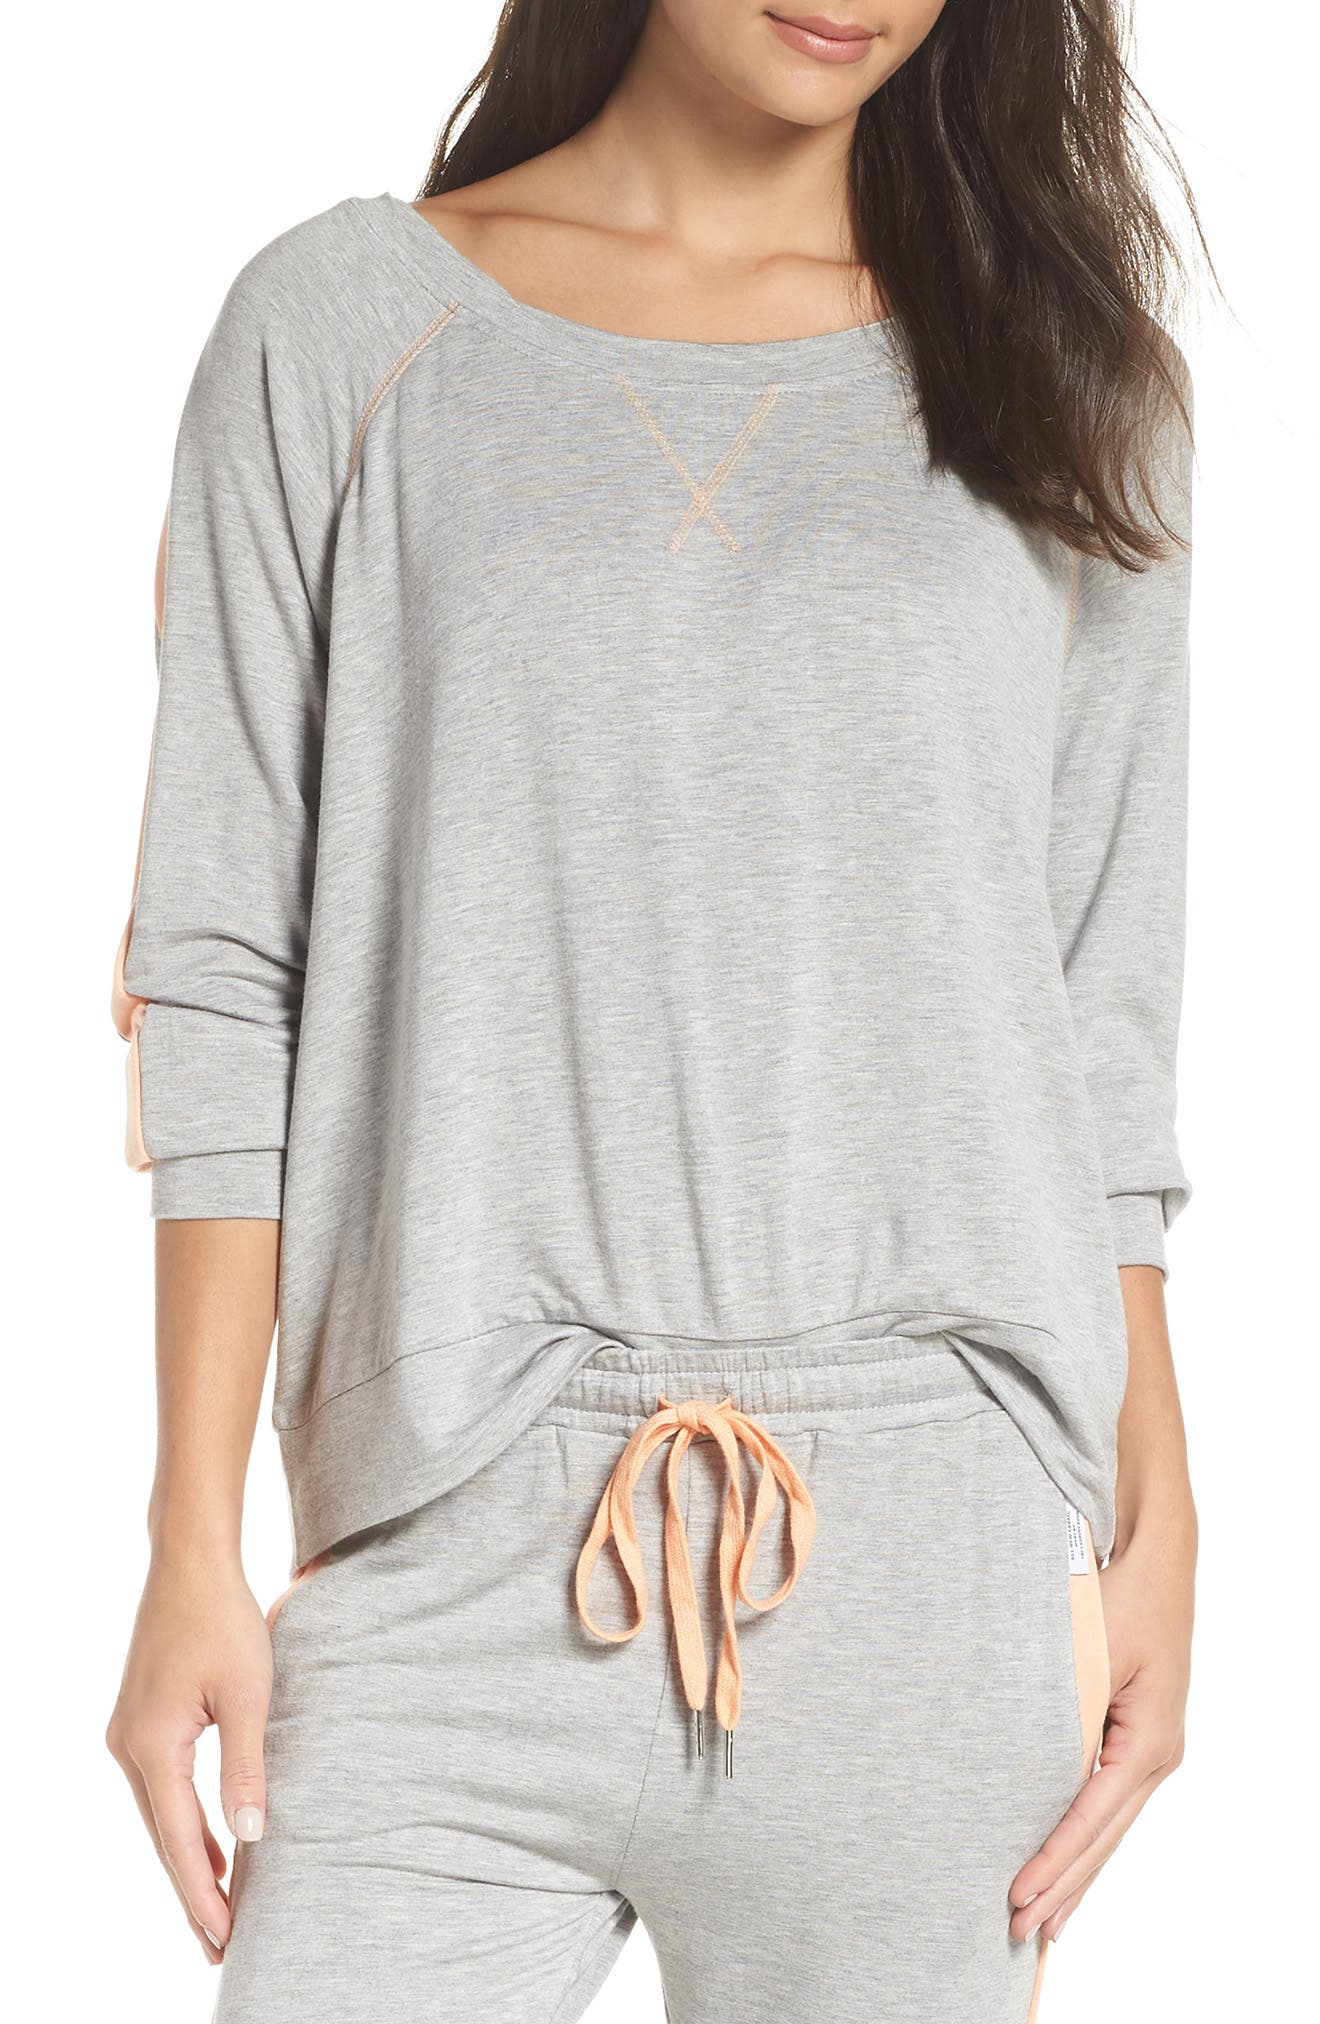 Elevens Sweatshirt,                             Main thumbnail 1, color,                             HEATHER / PEACH